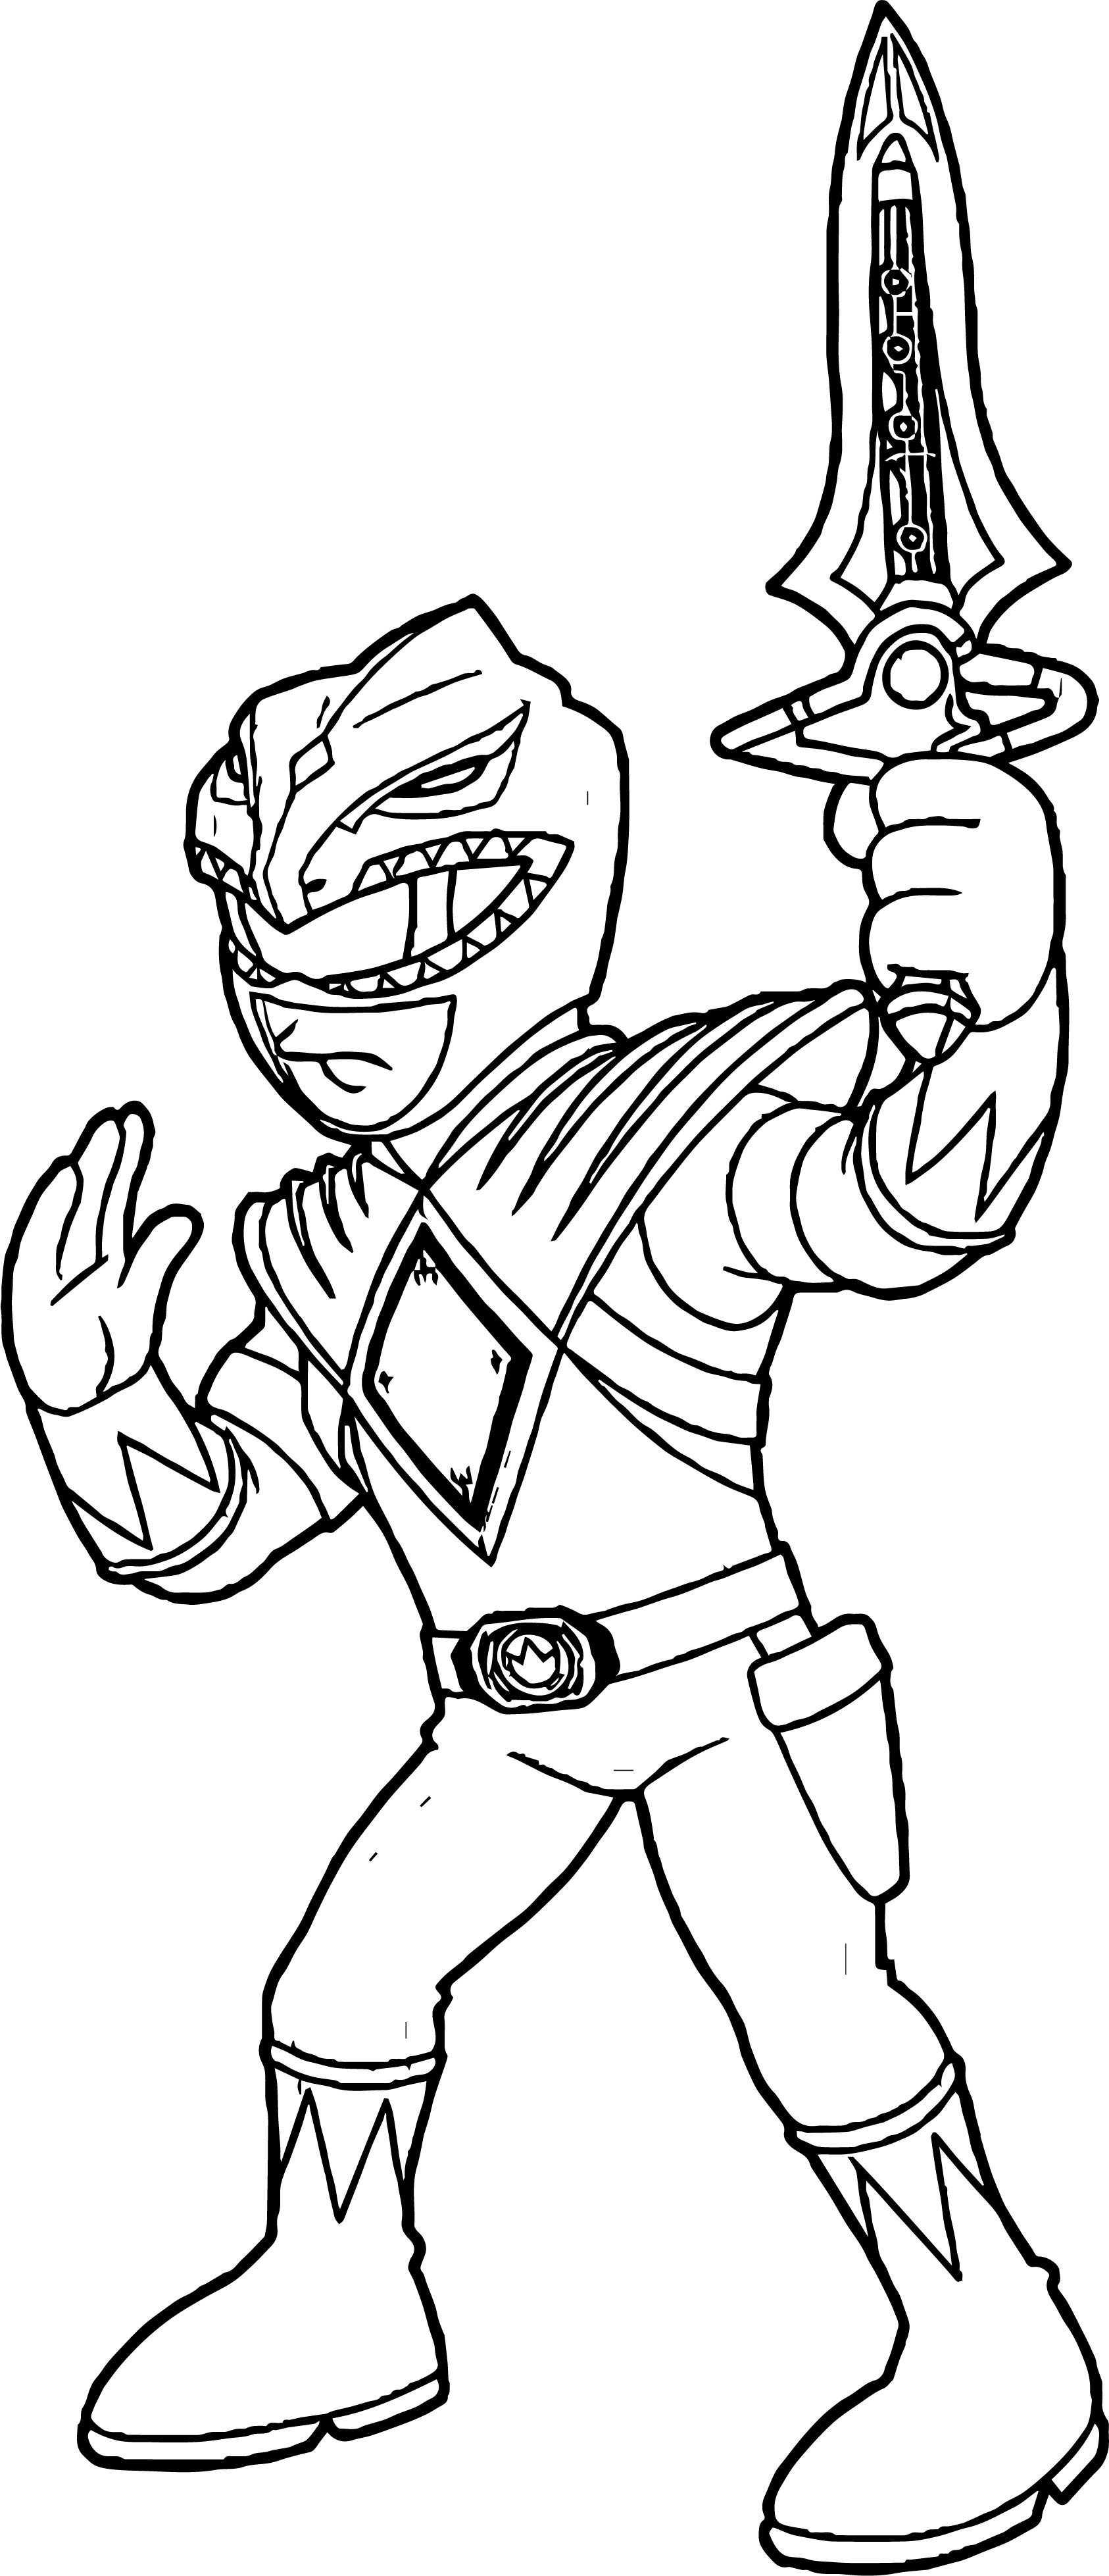 mighty morphin power rangers coloring pages blue power ranger coloring pages at getcoloringscom morphin pages coloring rangers power mighty